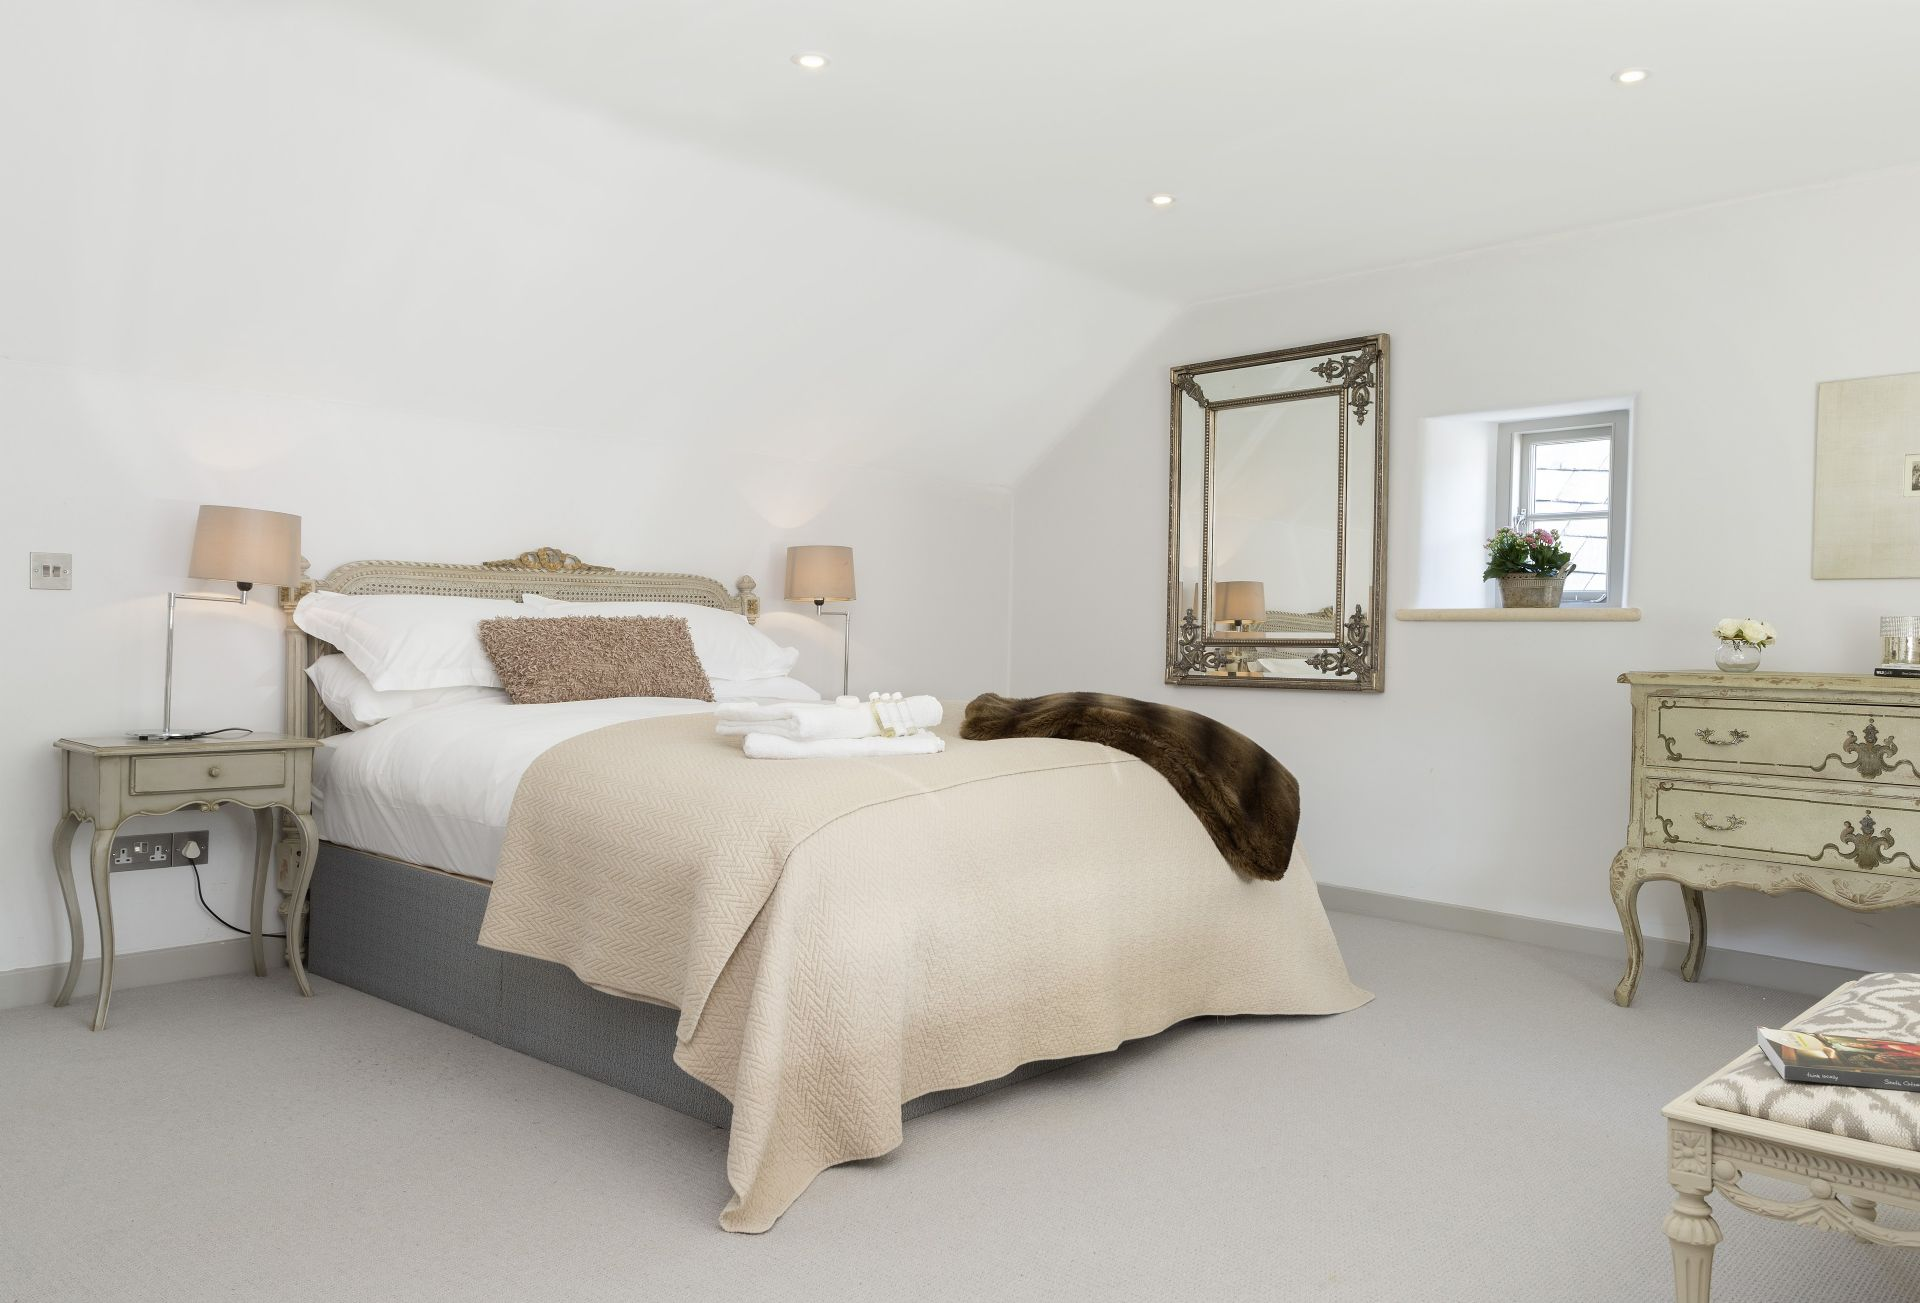 Master bedroom with 5' double bed